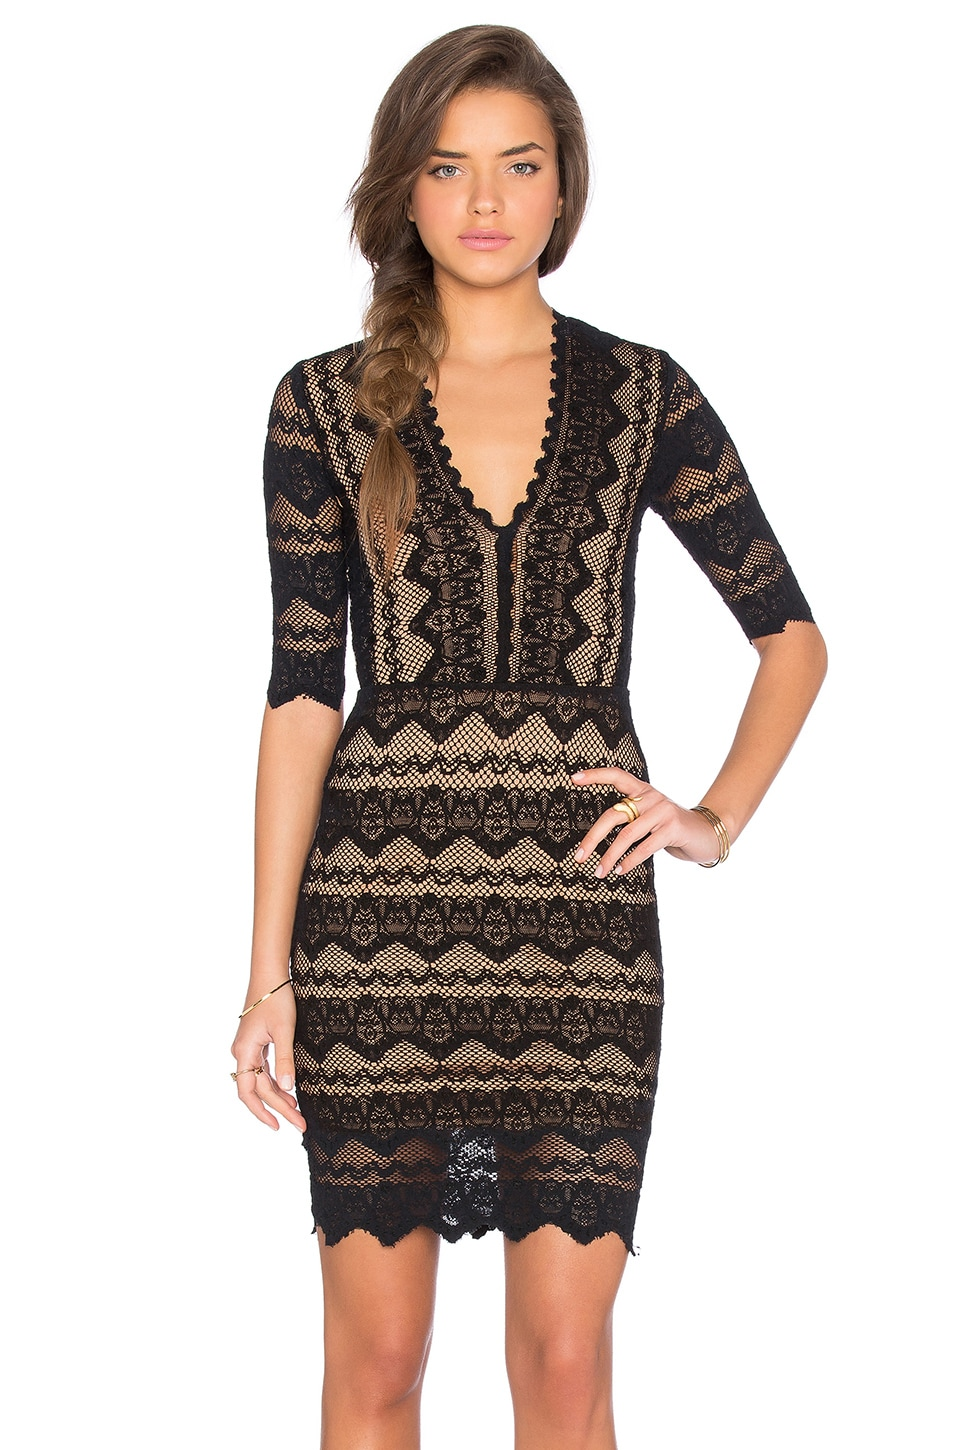 Nightcap Sierra Lace 3/4 Sleeve Deep V Dress in Black